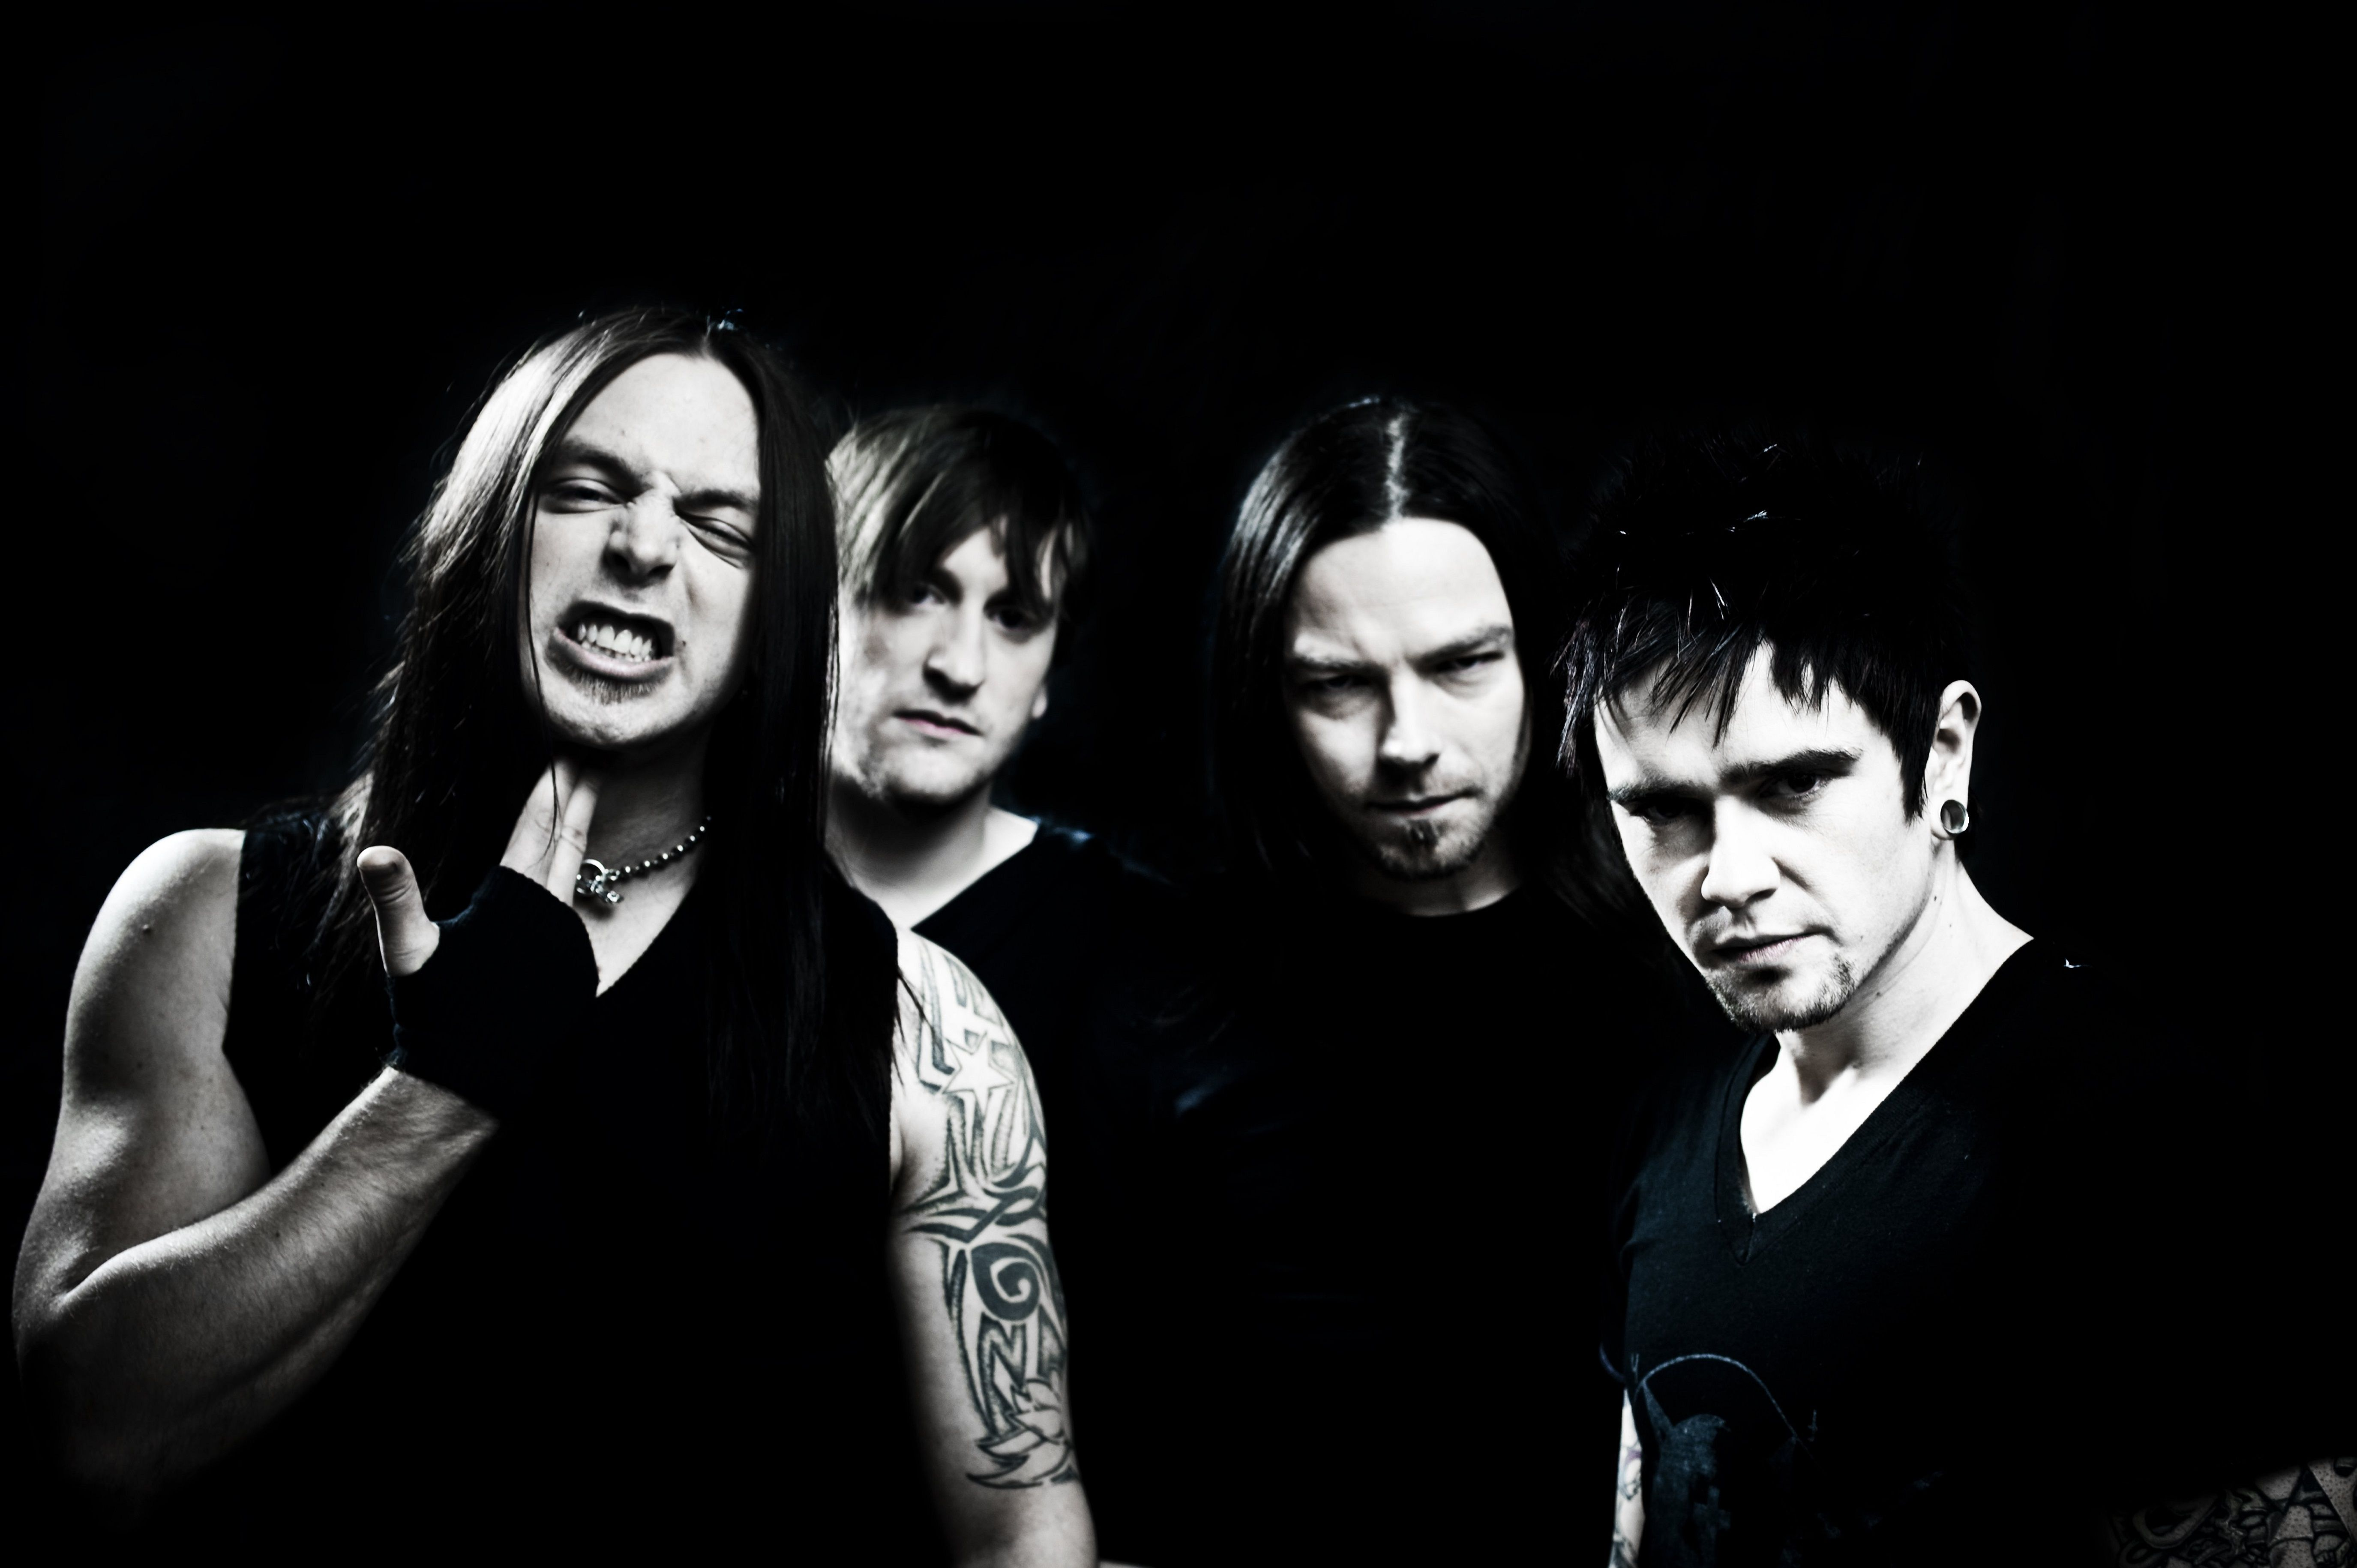 Bullet For My Valentine Wallpapers Top Free Bullet For My